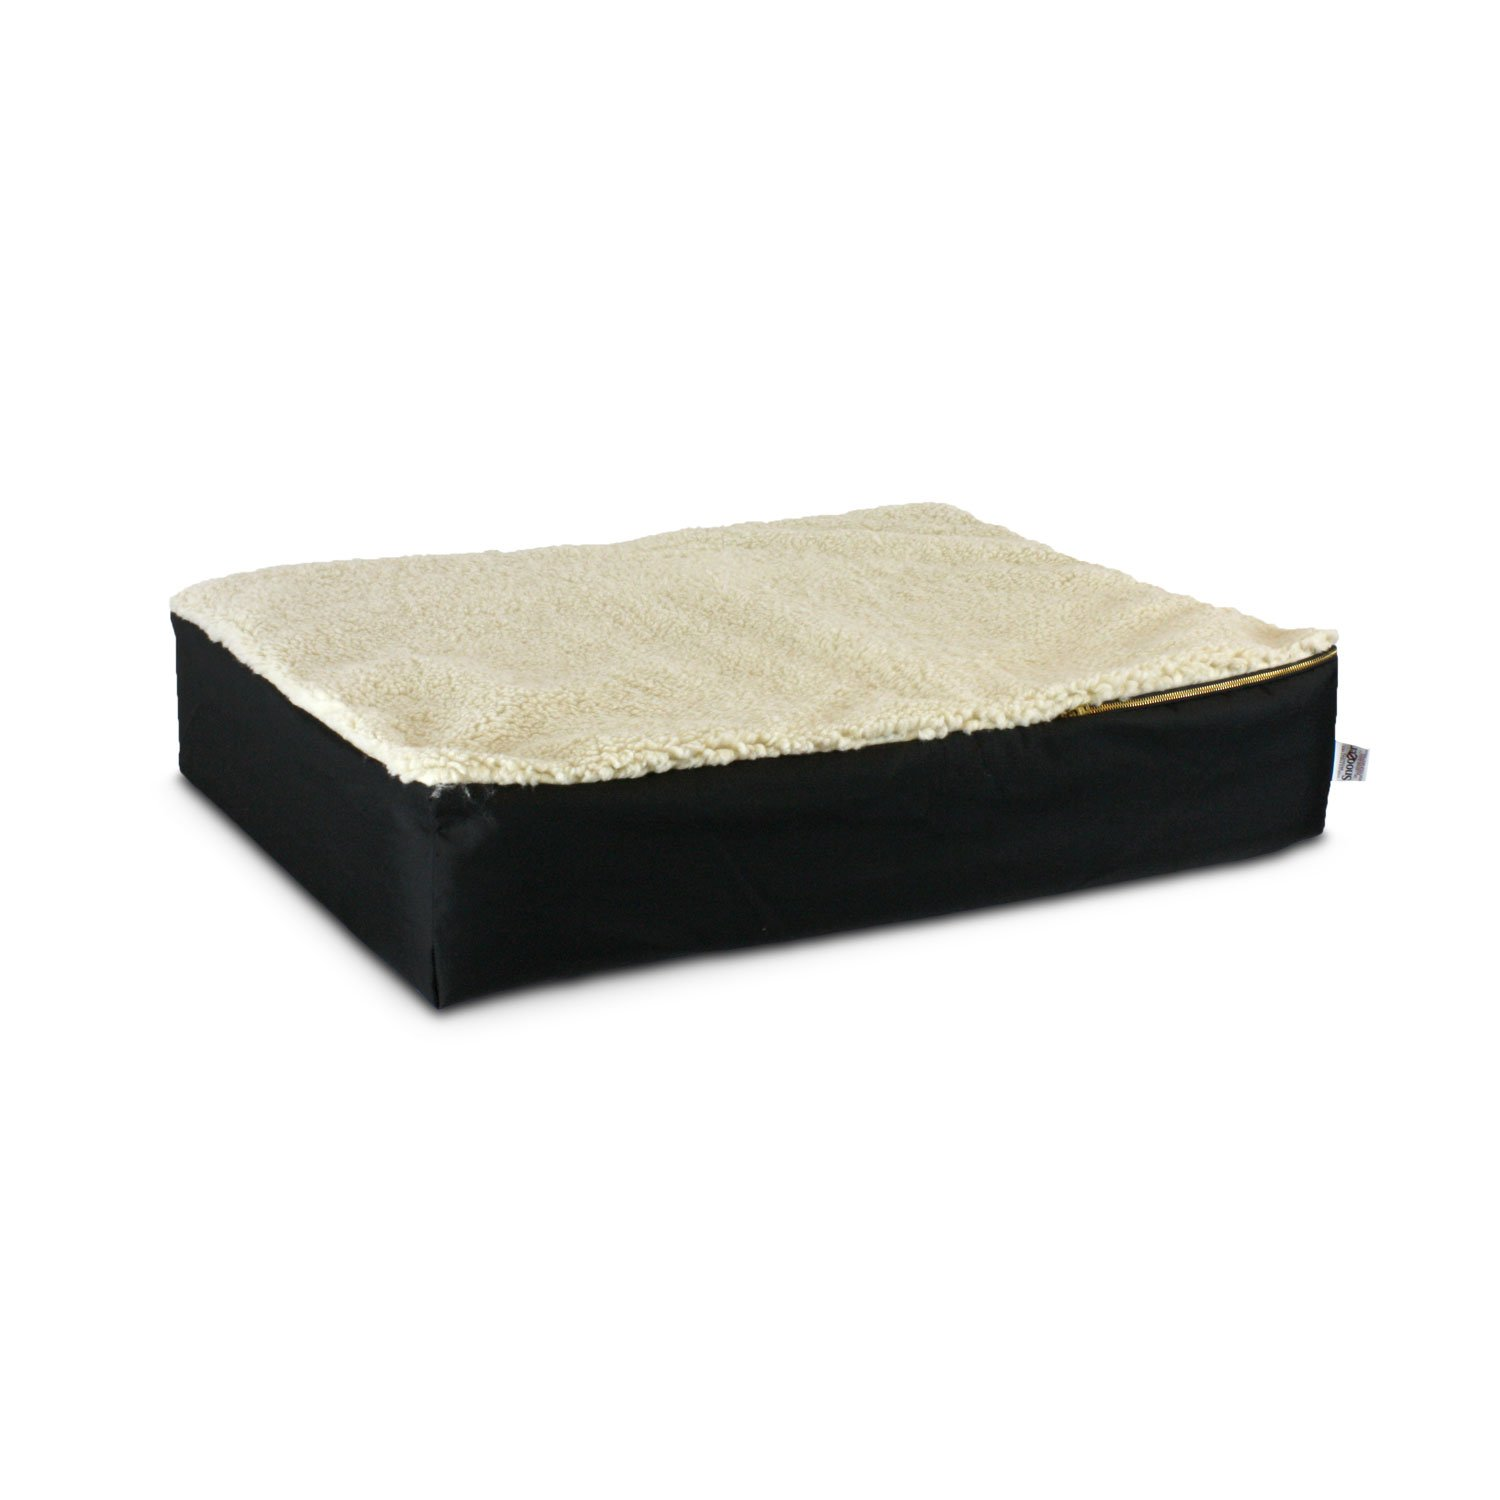 Snoozer Super Orthopedic Lounger in Black & Cream